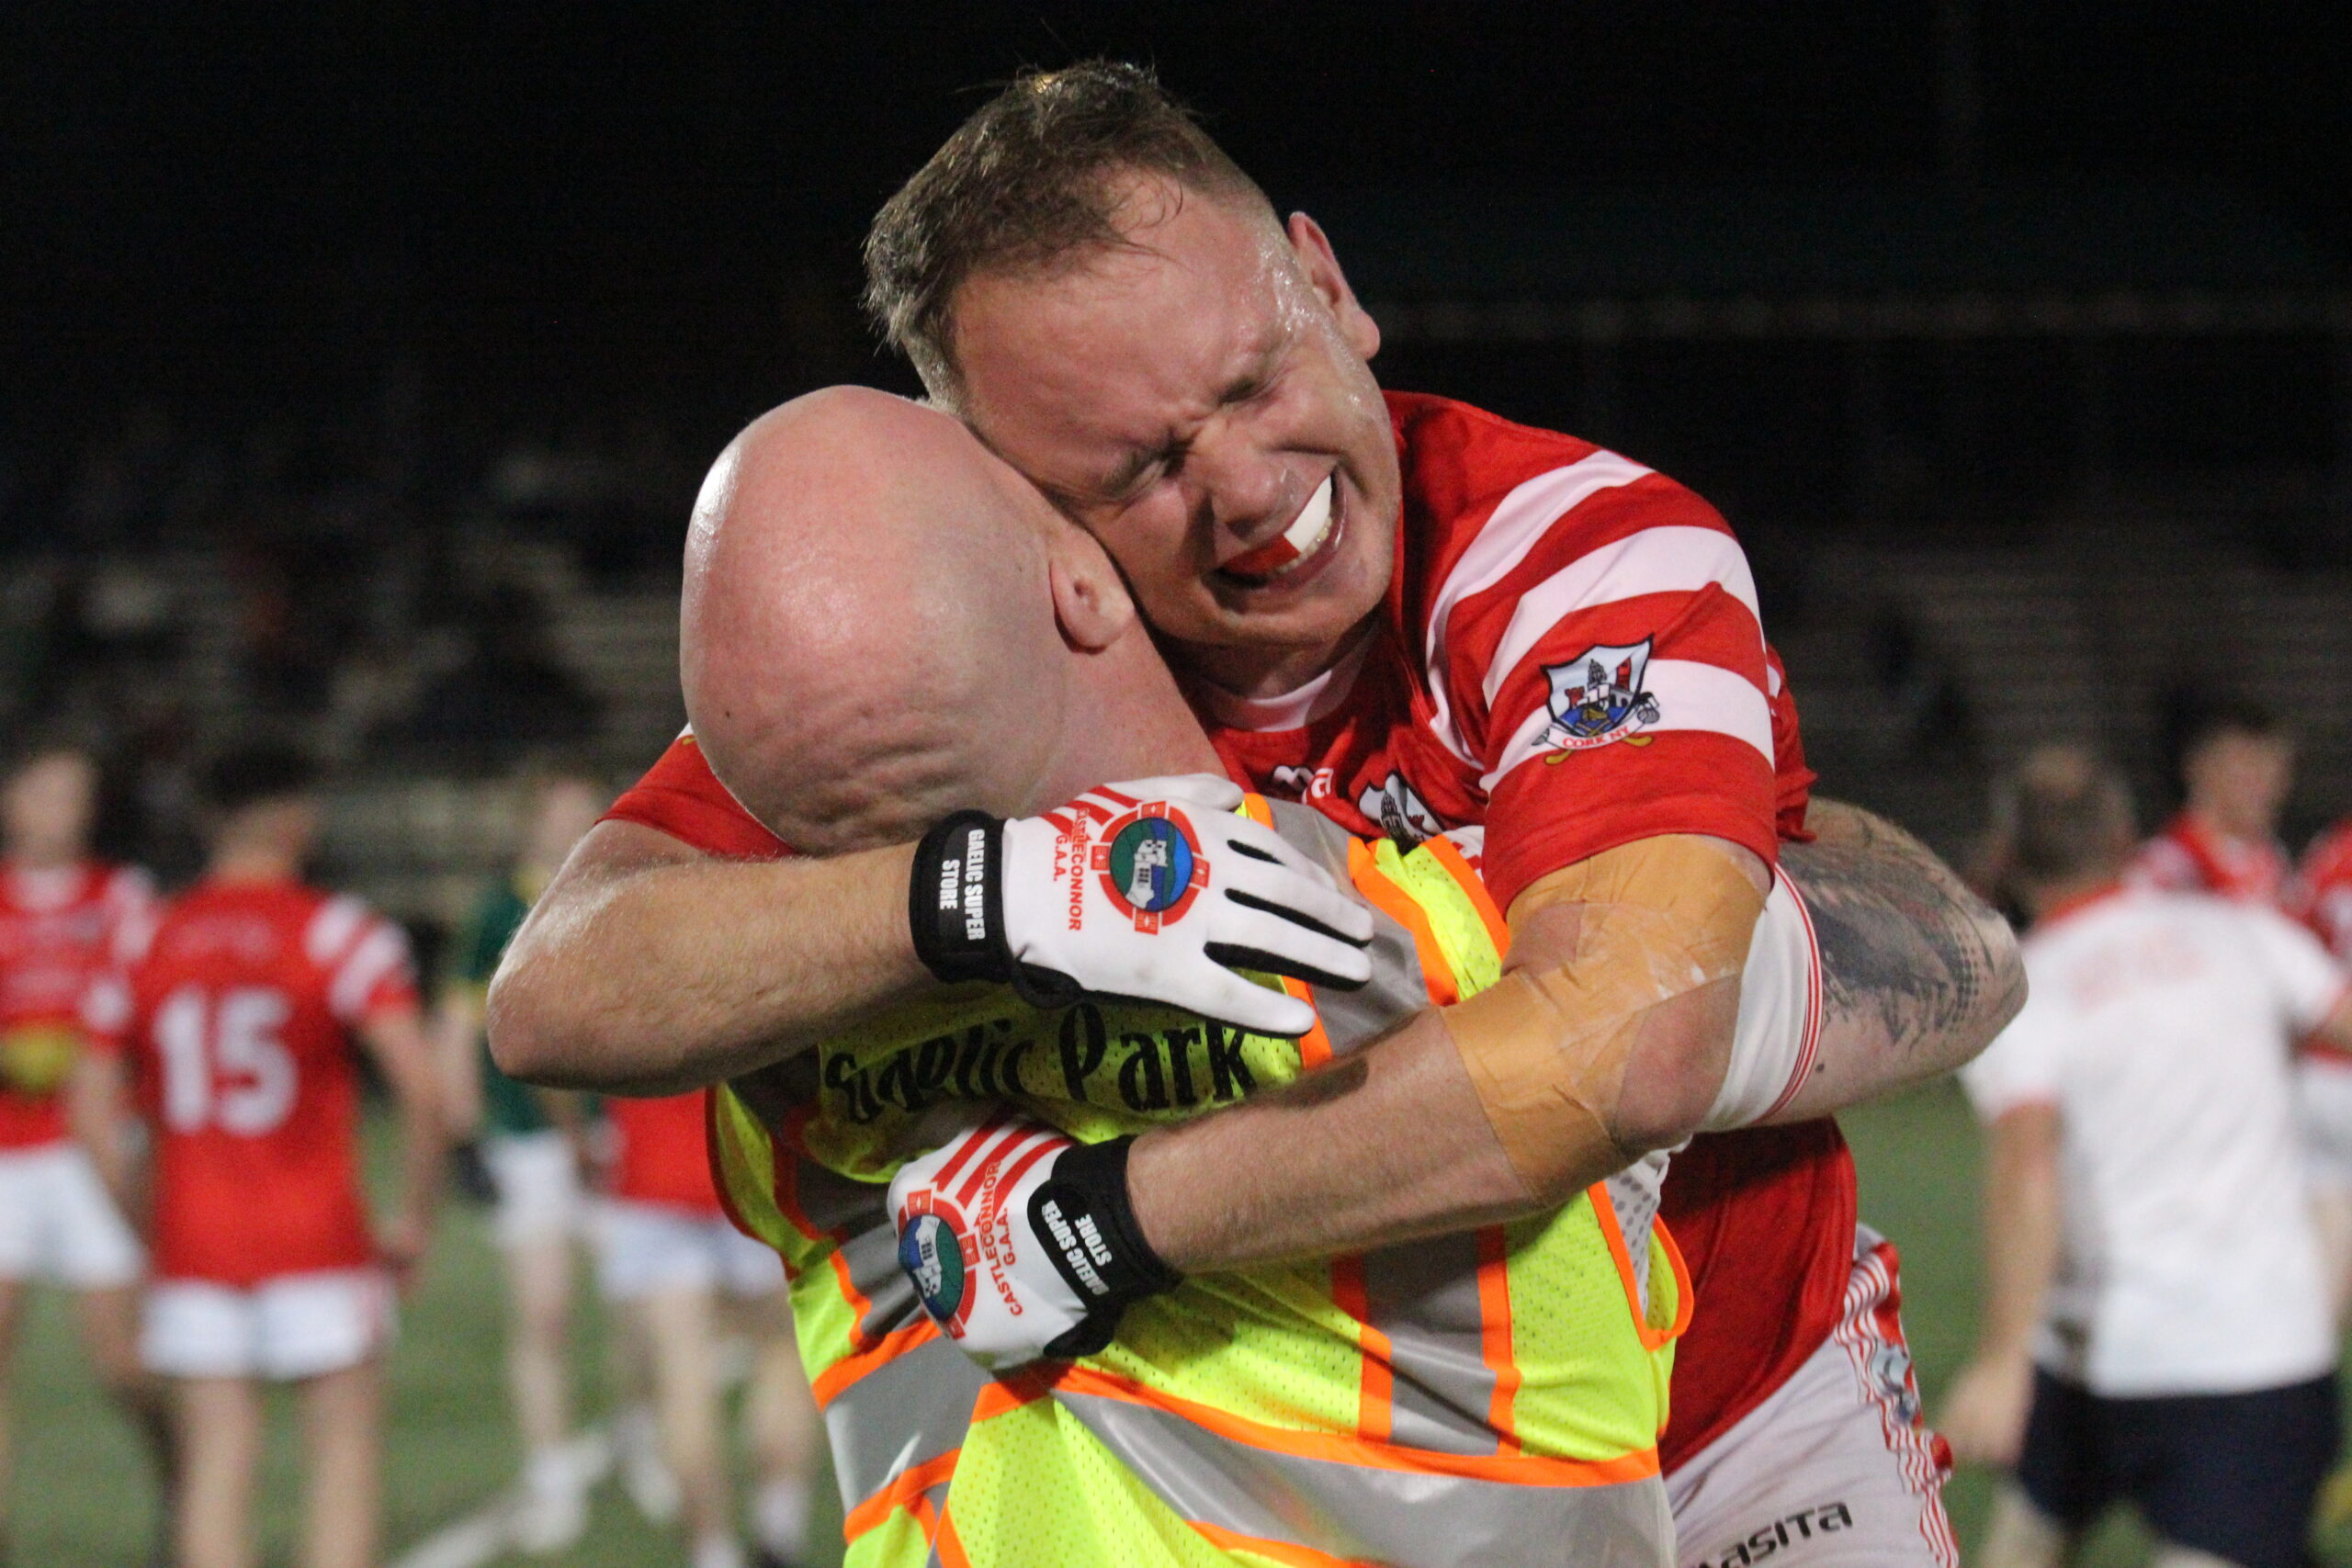 Cork manager Lorcan Grall and Niall Judge celebrate after the final whistle (Photo by Sharon Redican)